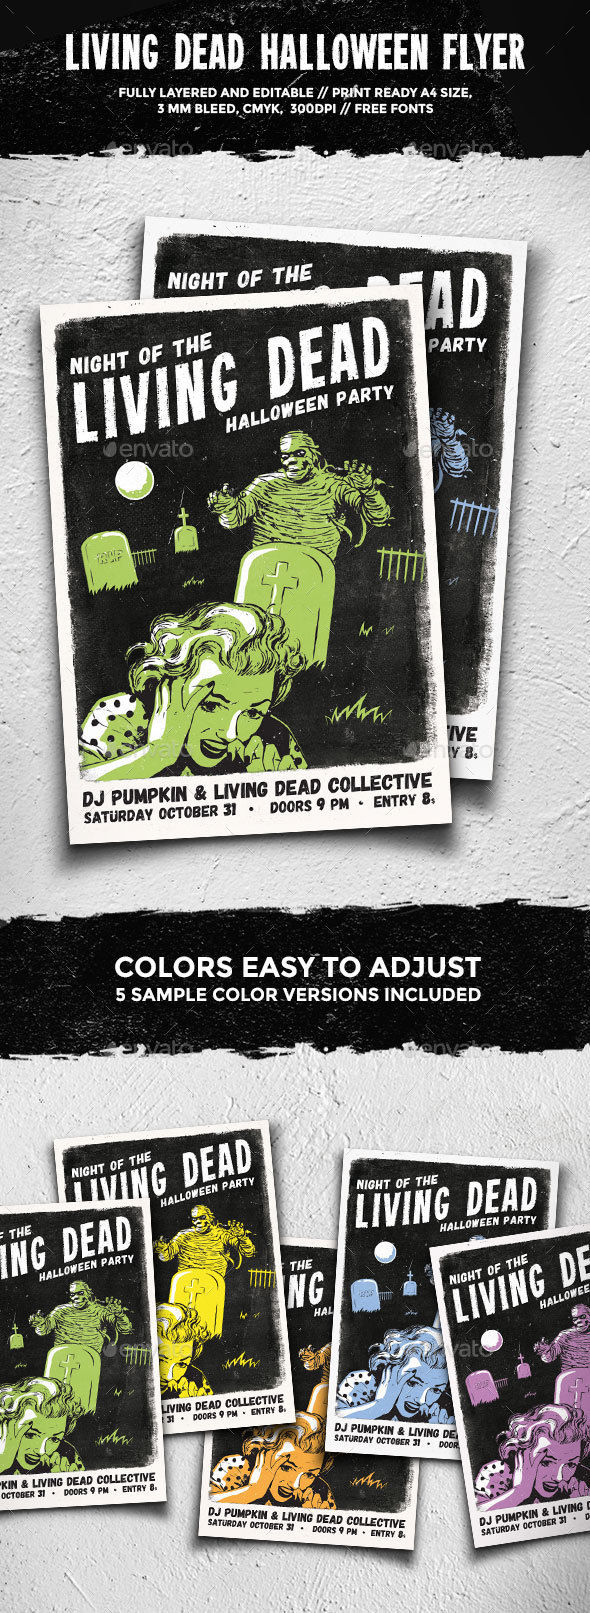 Living Dead Halloween Flyer by GraphicGoods (Halloween party flyer)